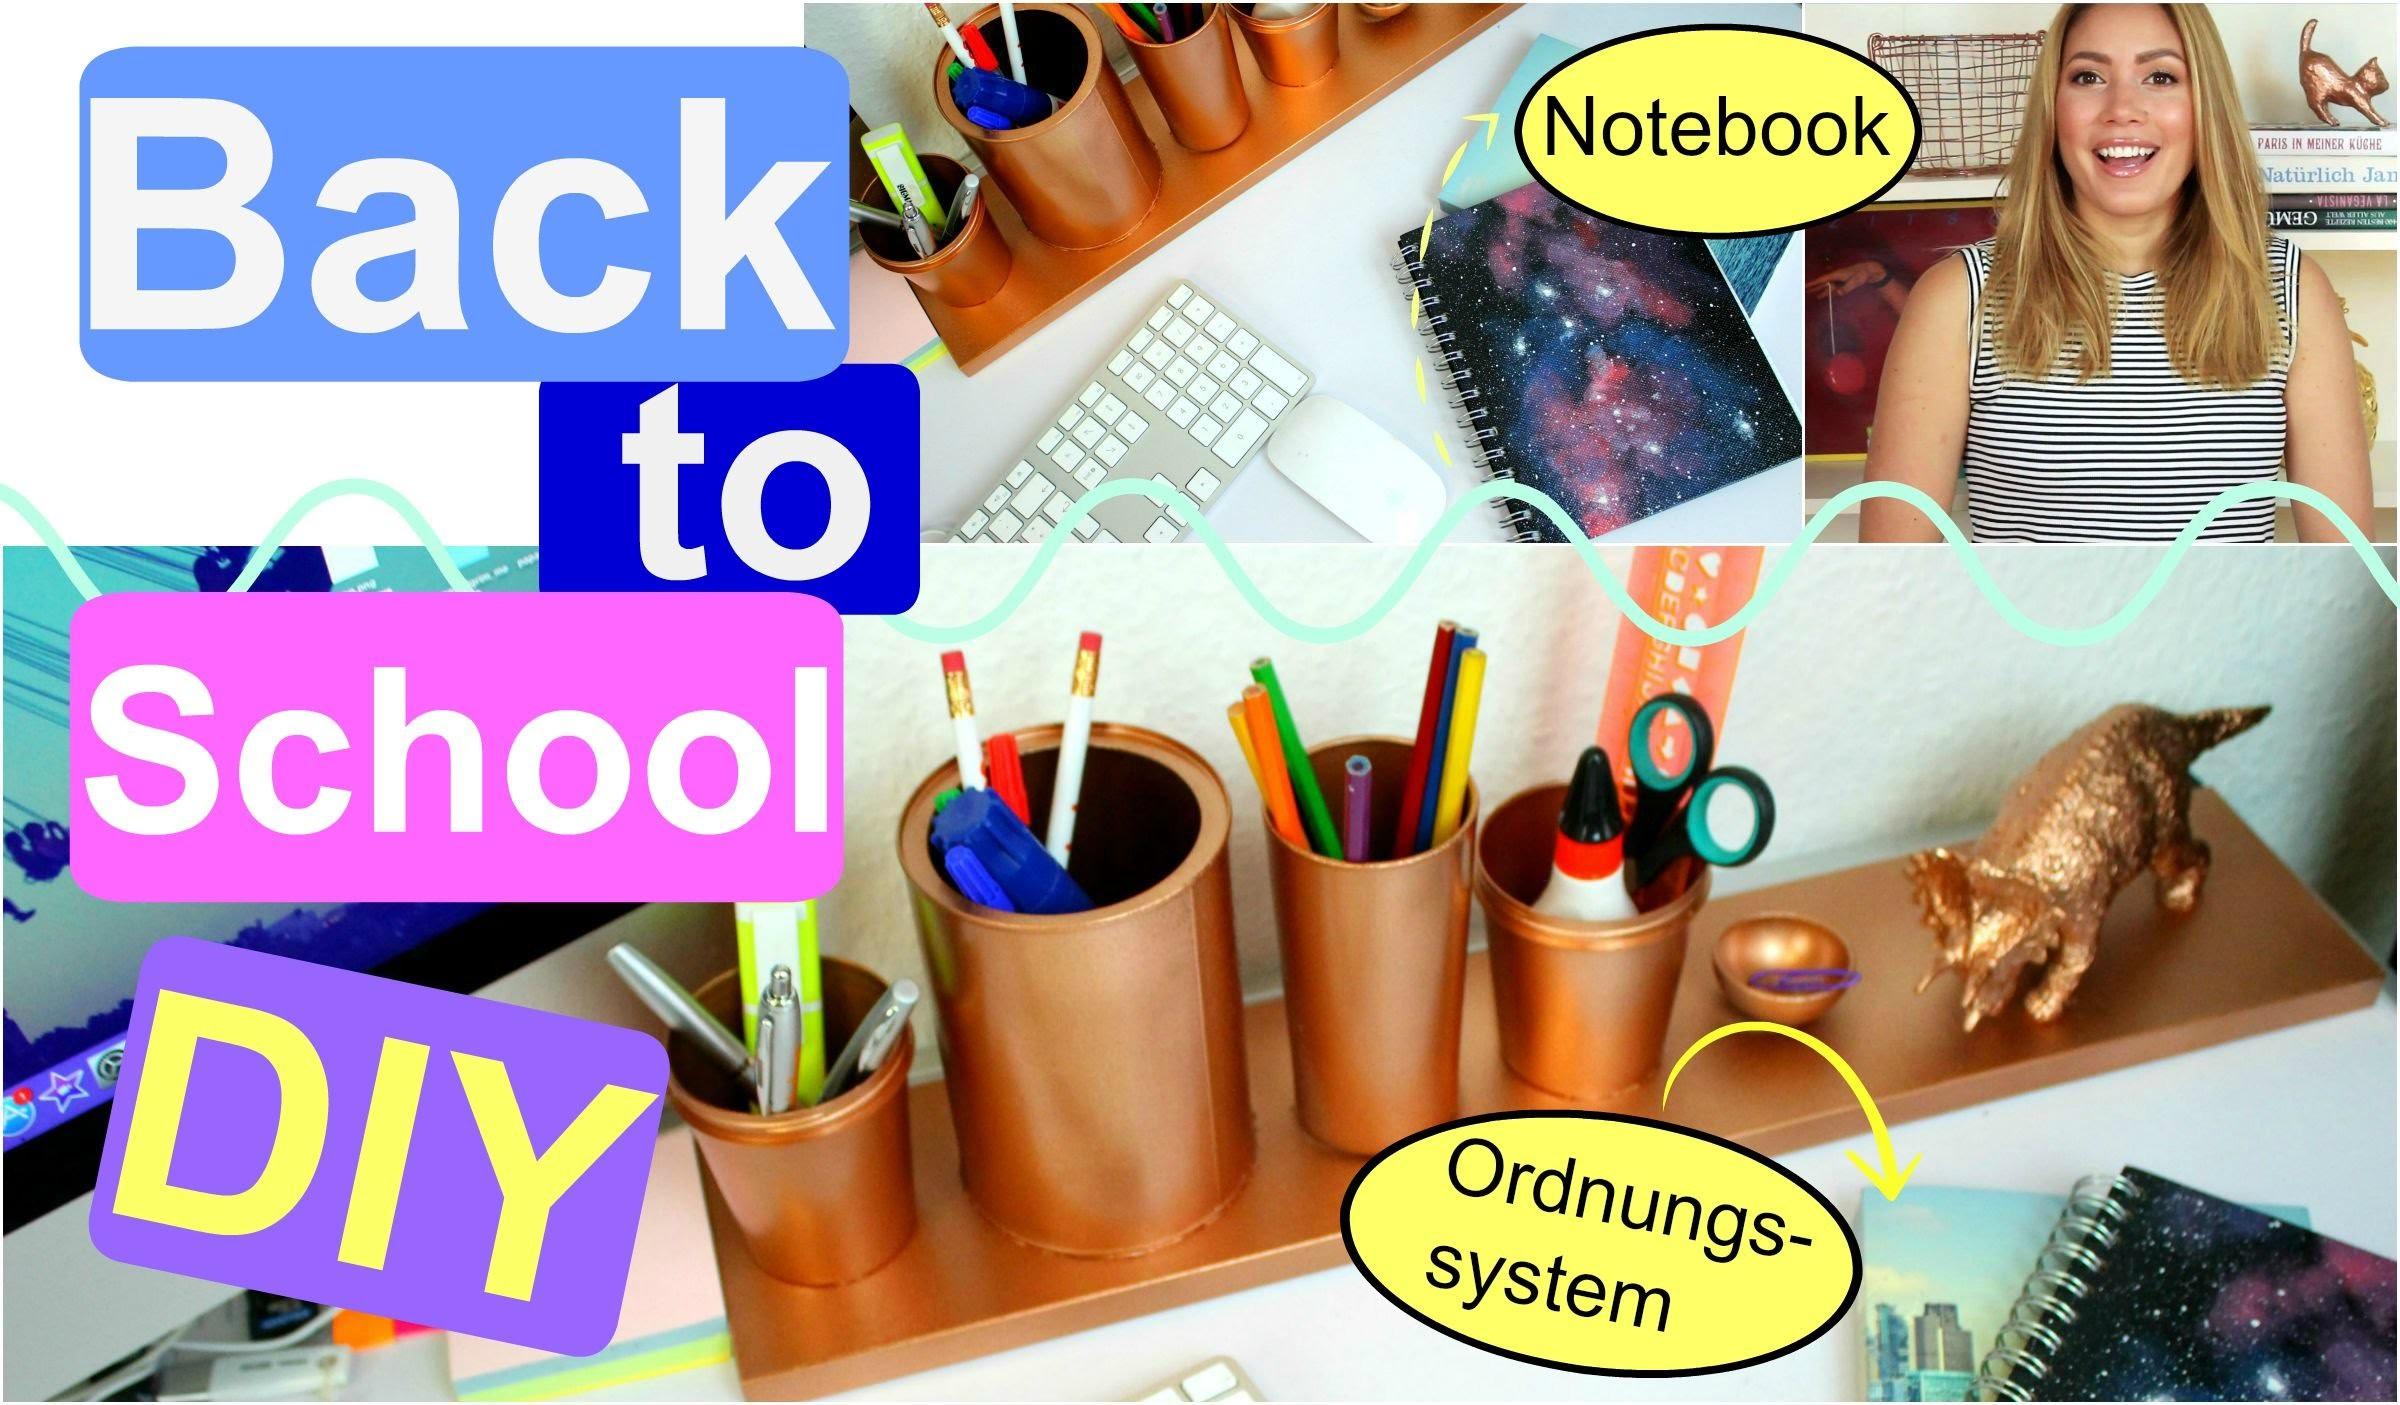 BACK TO SCHOOL DIY - Galaxy Notebook. Ordnungssystem | funnypilgrim